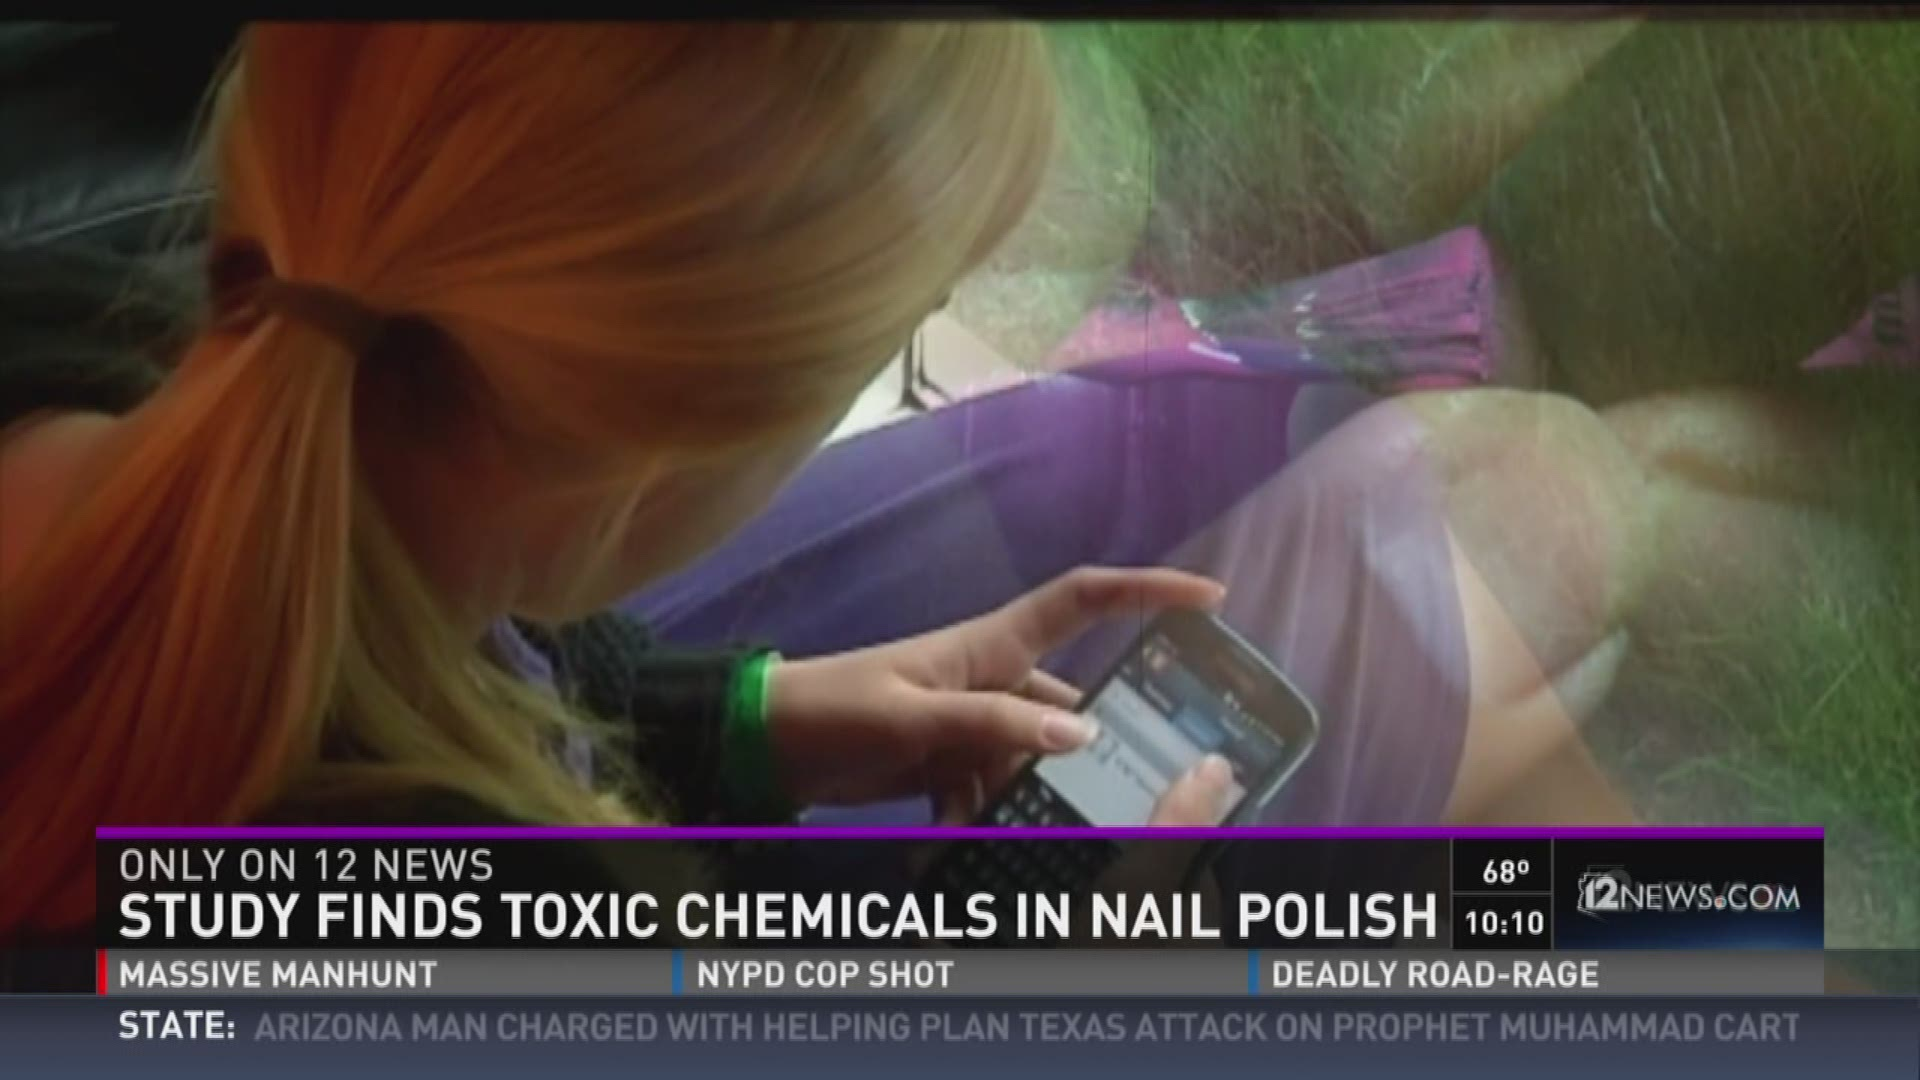 Study finds toxic chemicals in nail polish